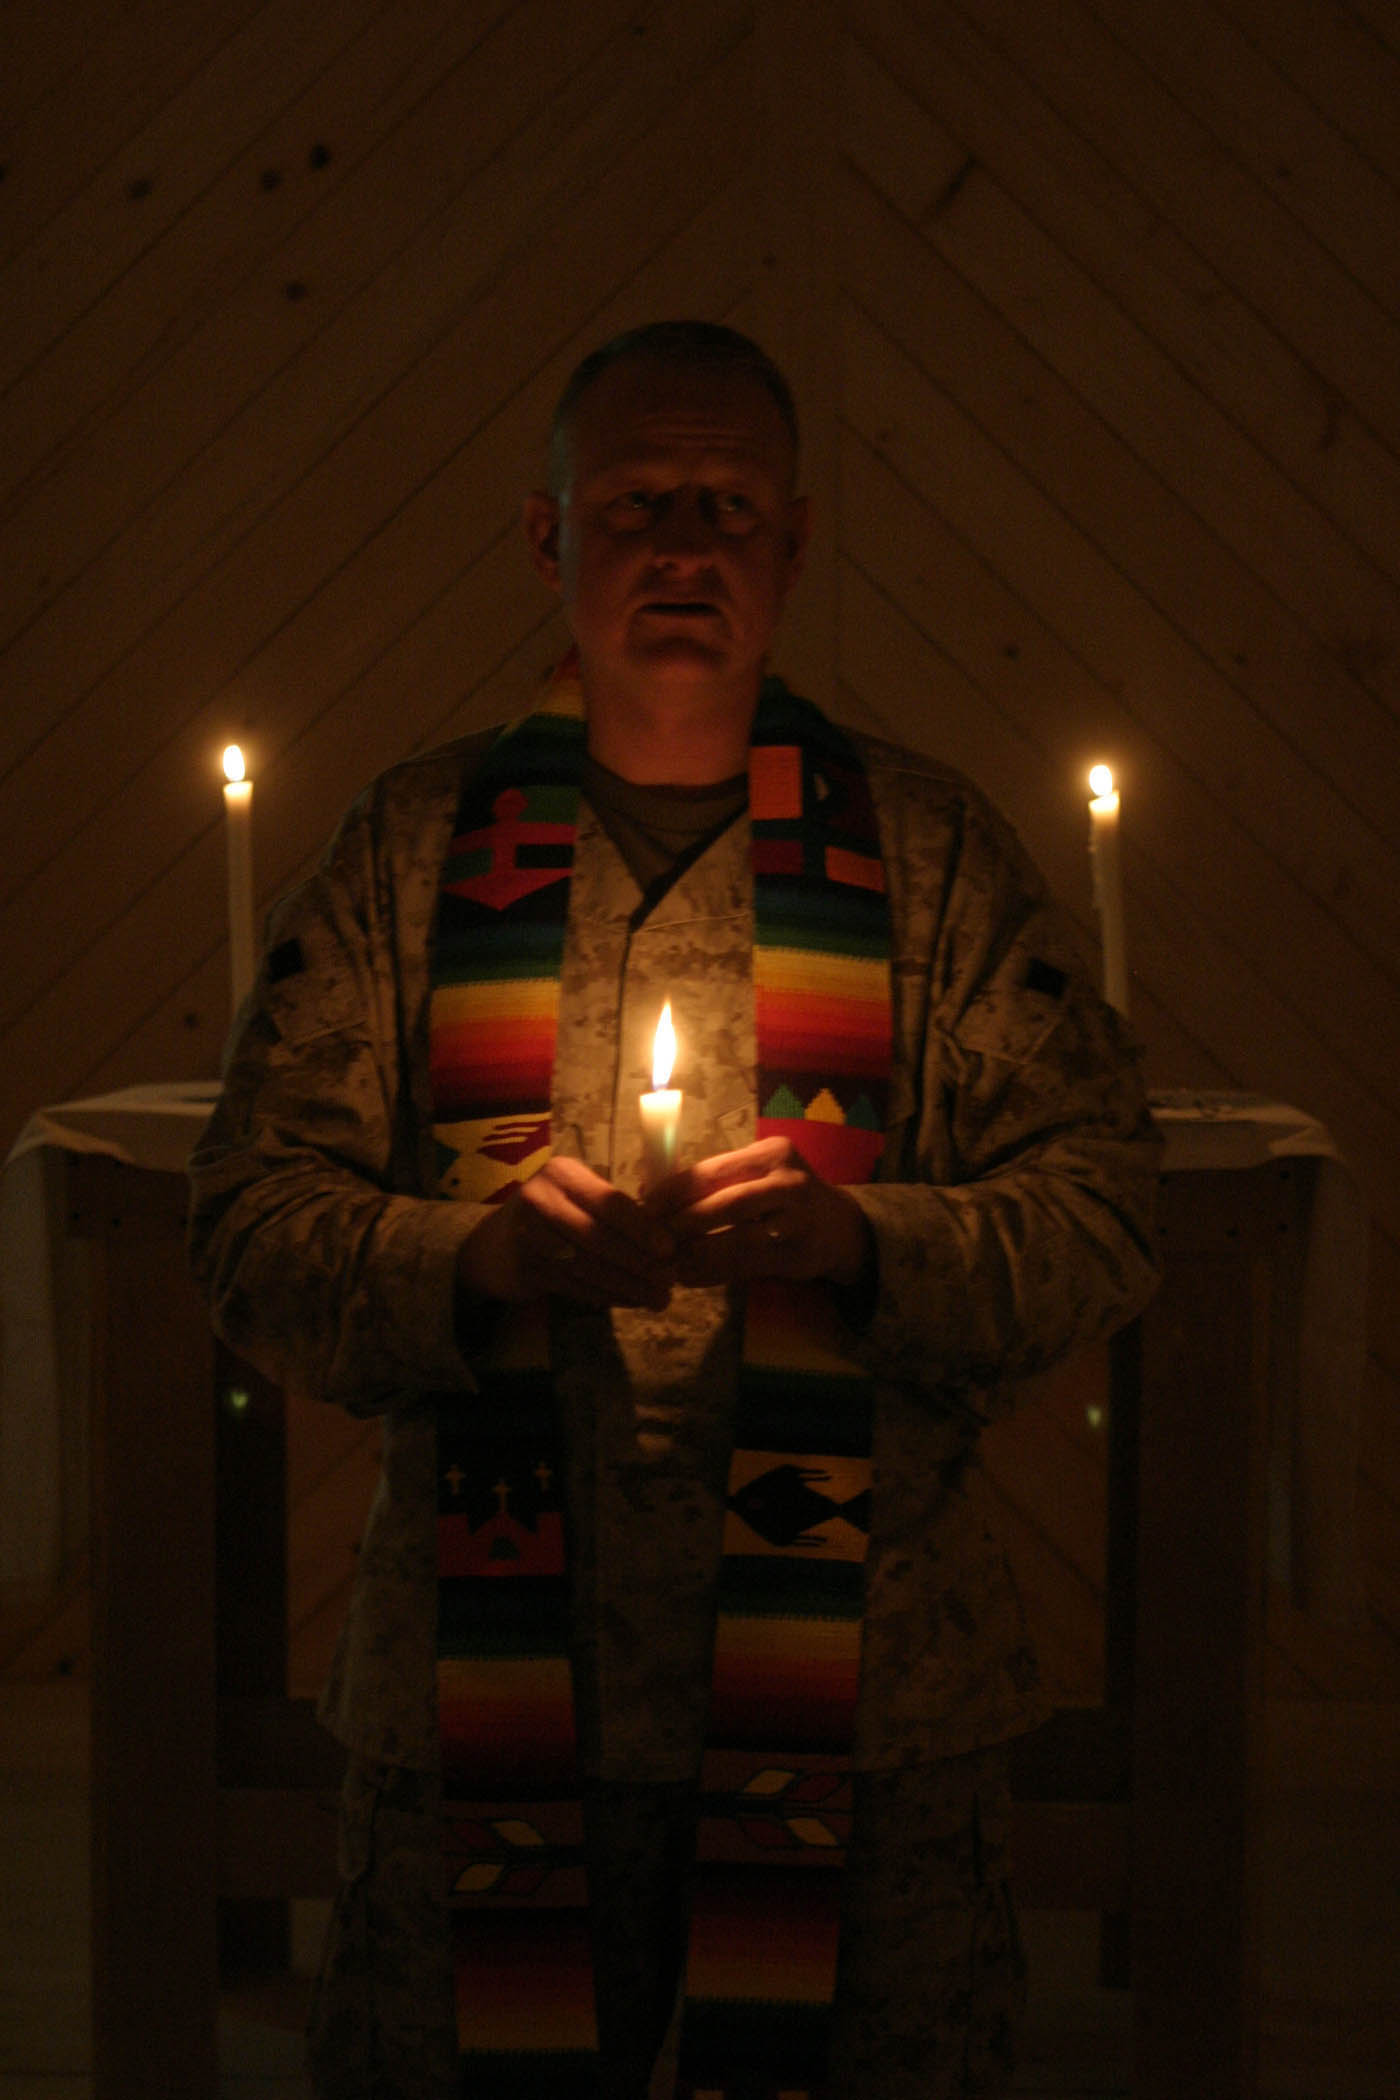 Service members celebrate on Christmas Eve with candle light vigil ...